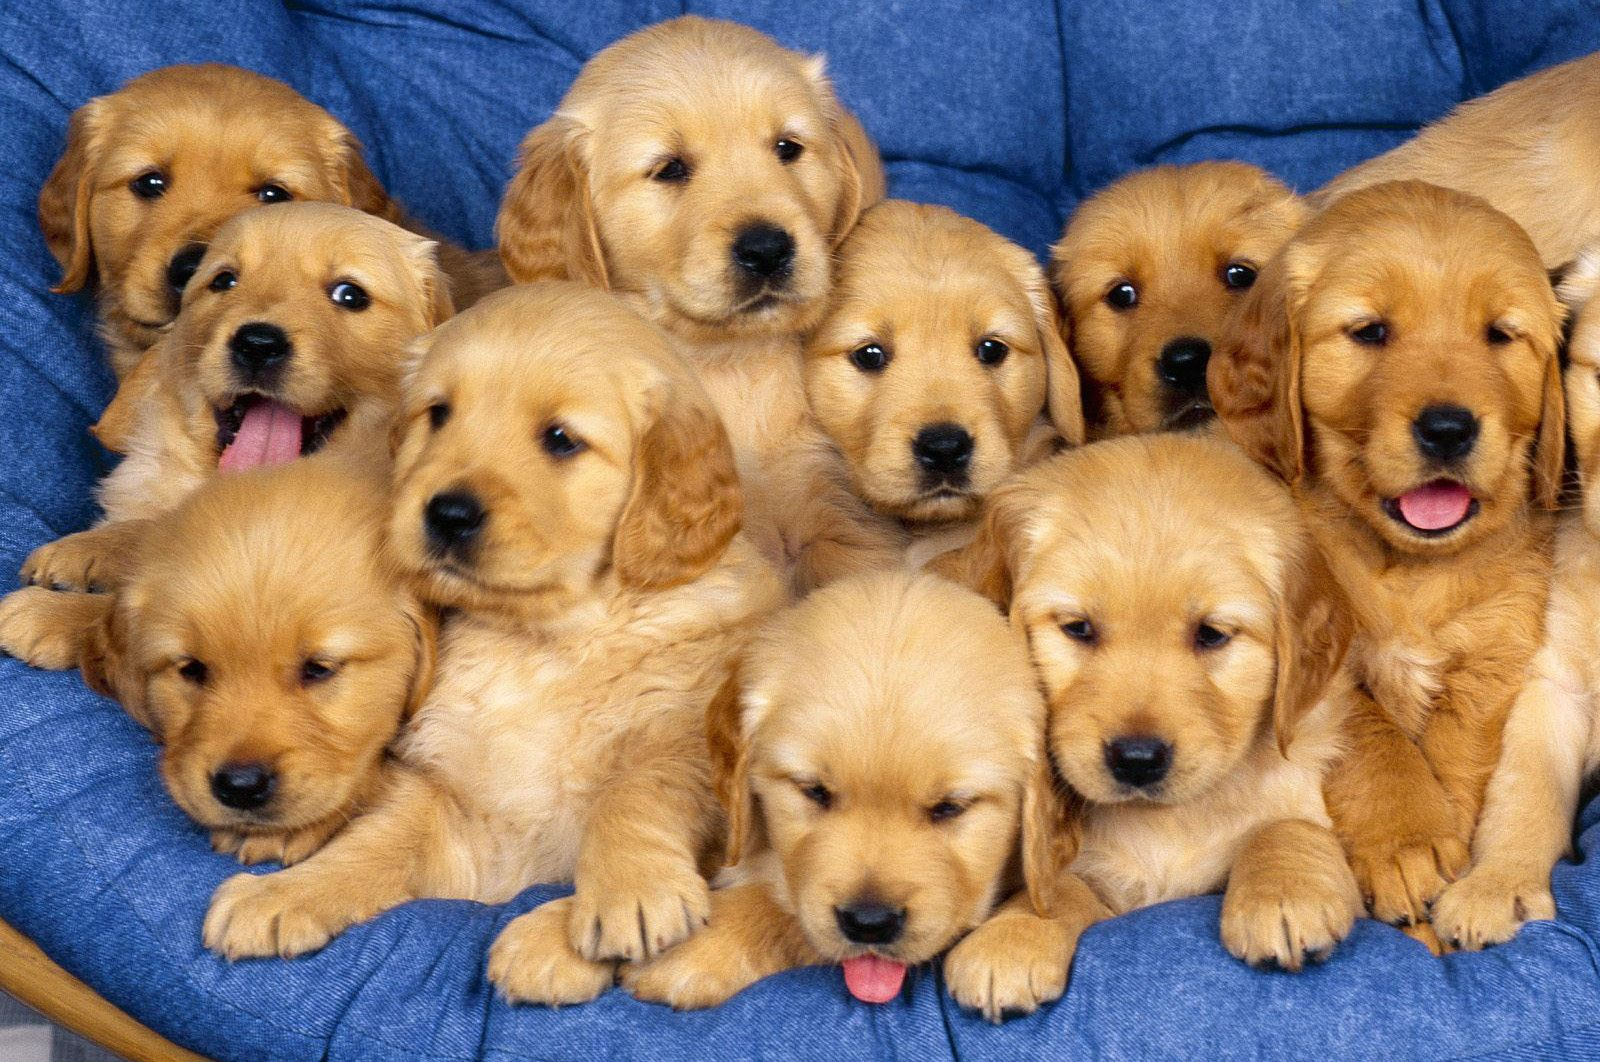 Cute-Dogs-And-Puppies-wallpaper-wp3804234